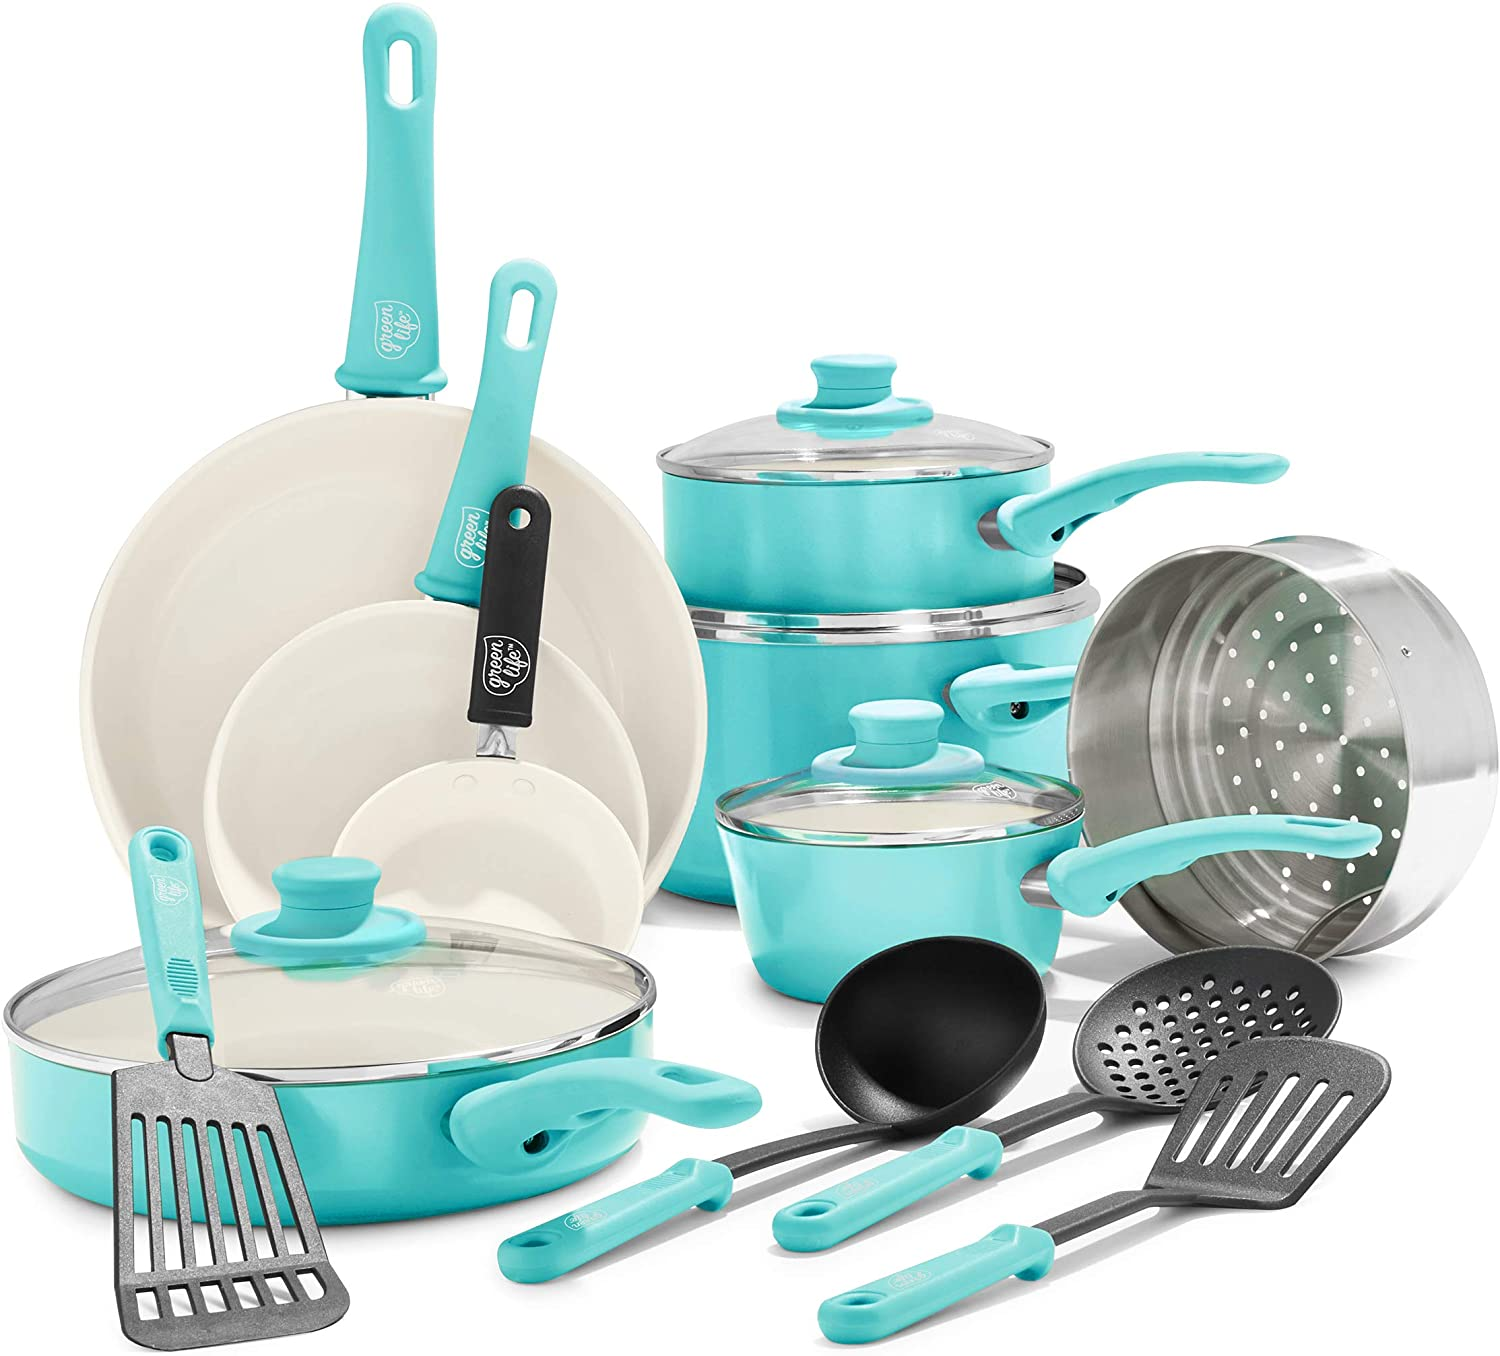 GreenLife Ceramic Nonstick Cookware Set, 16-Piece